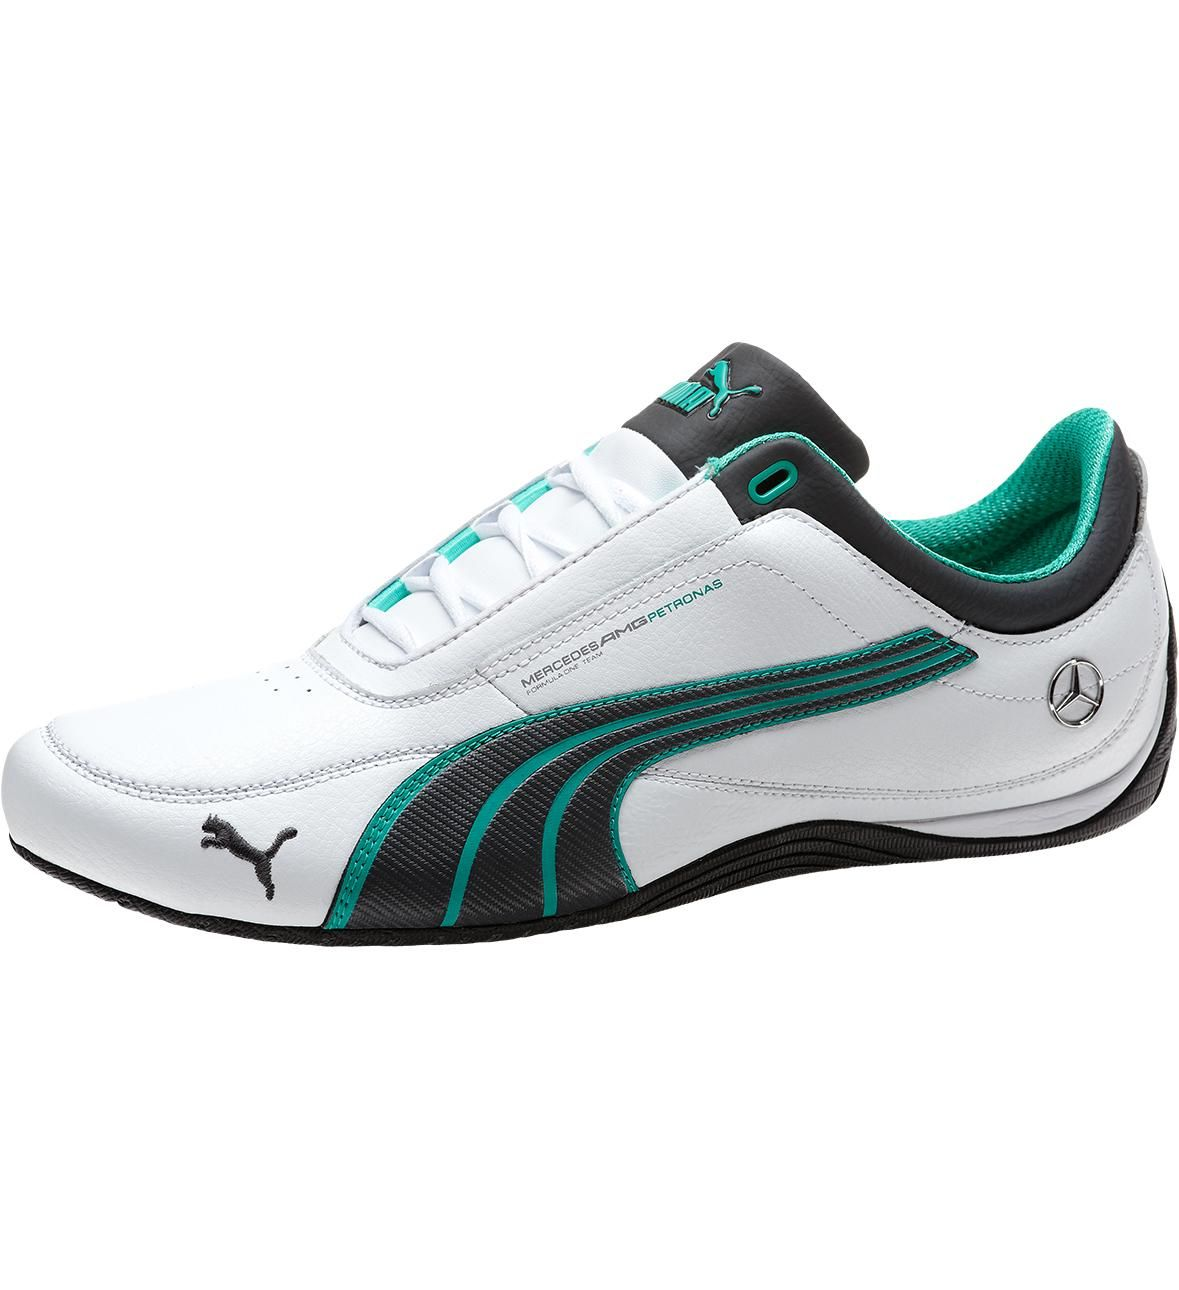 af7952cd2b86 Puma Shoes